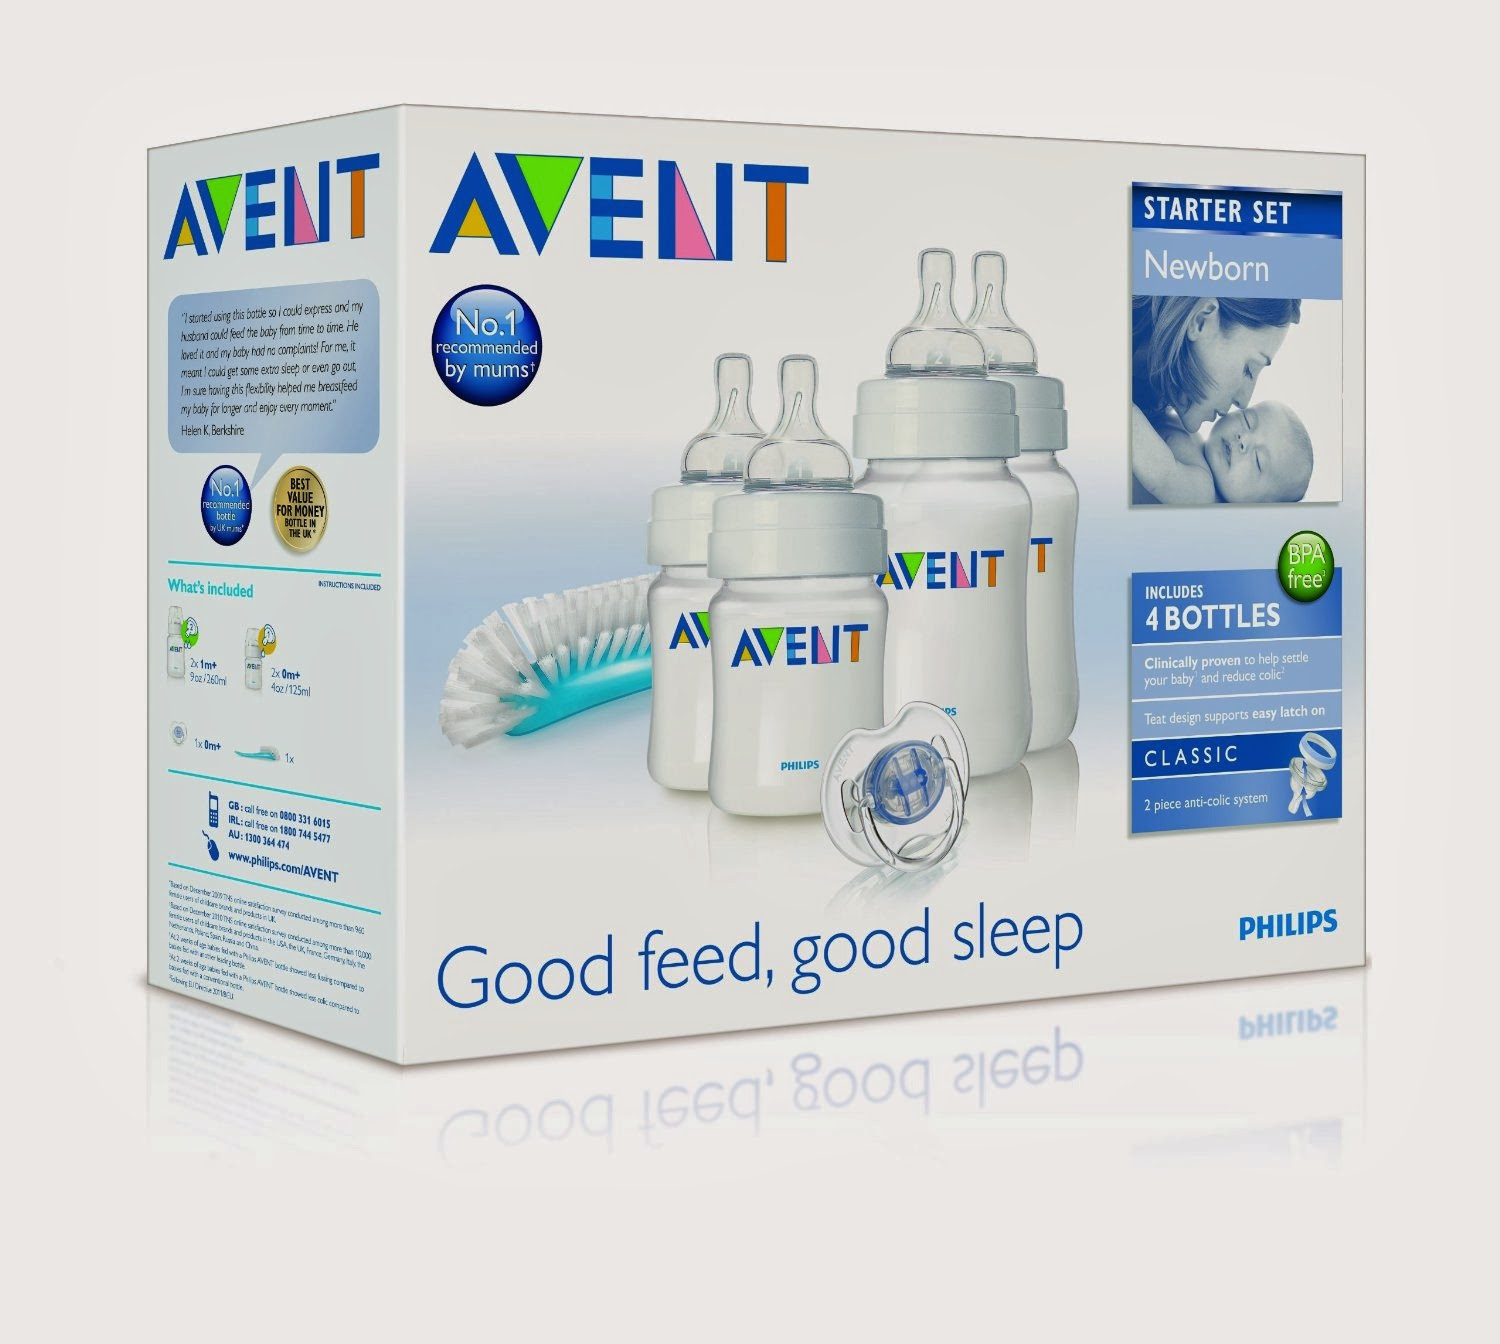 Philips Avent Scd290 00 Natural Newborn Starter Set Direct Sales Gift Baby